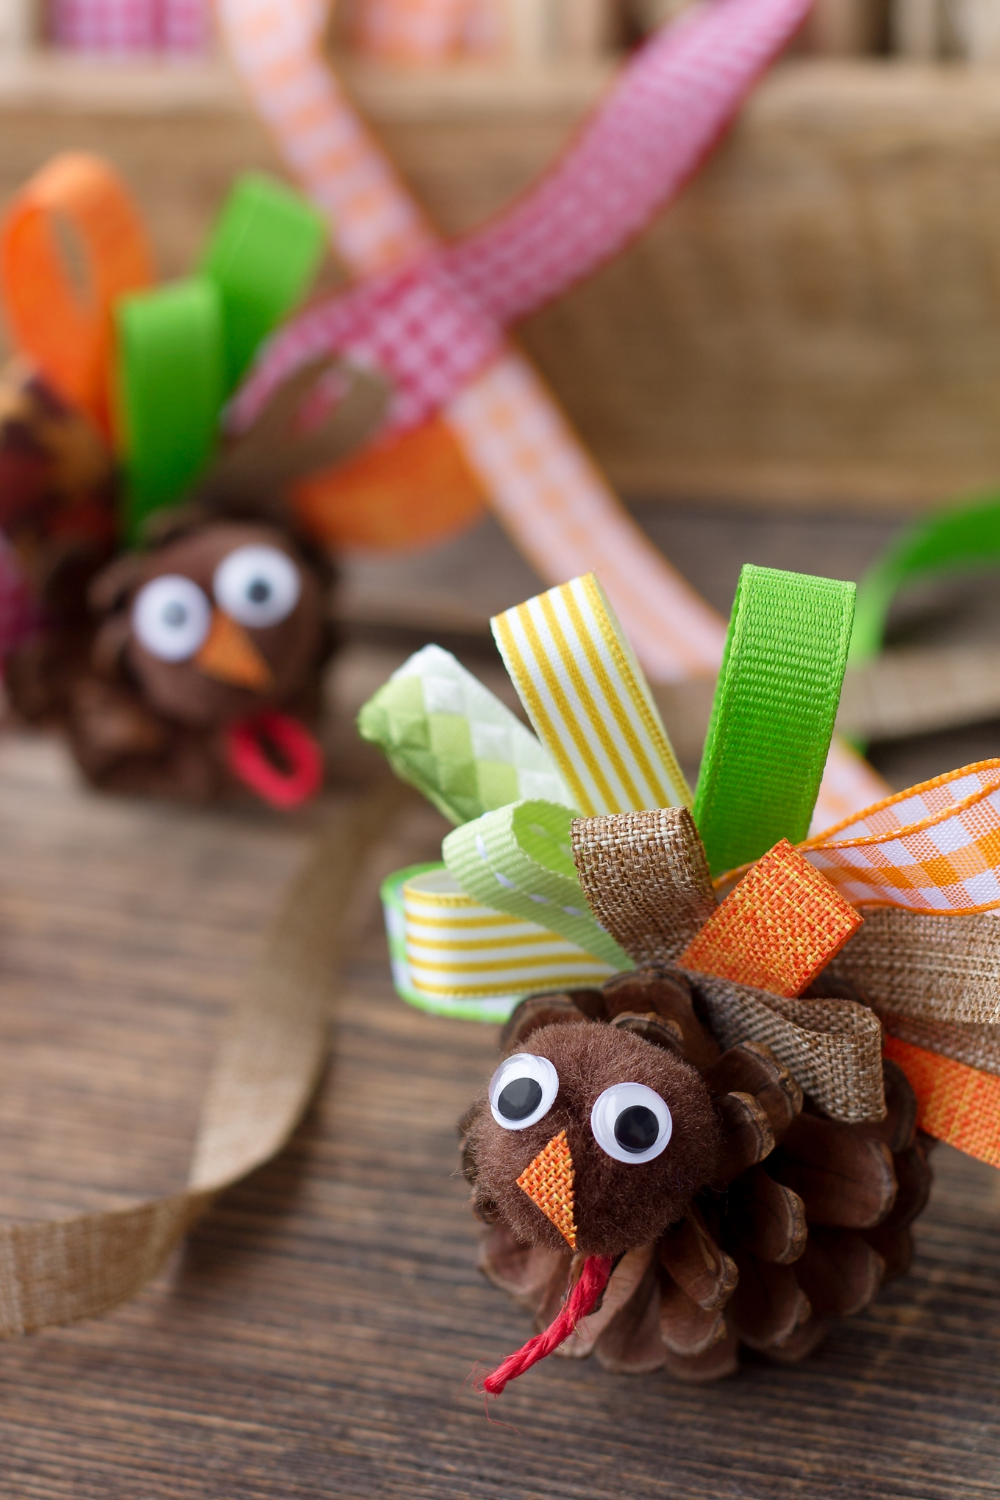 How to Make a Fun Pine Cone Turkey Craft for Kids